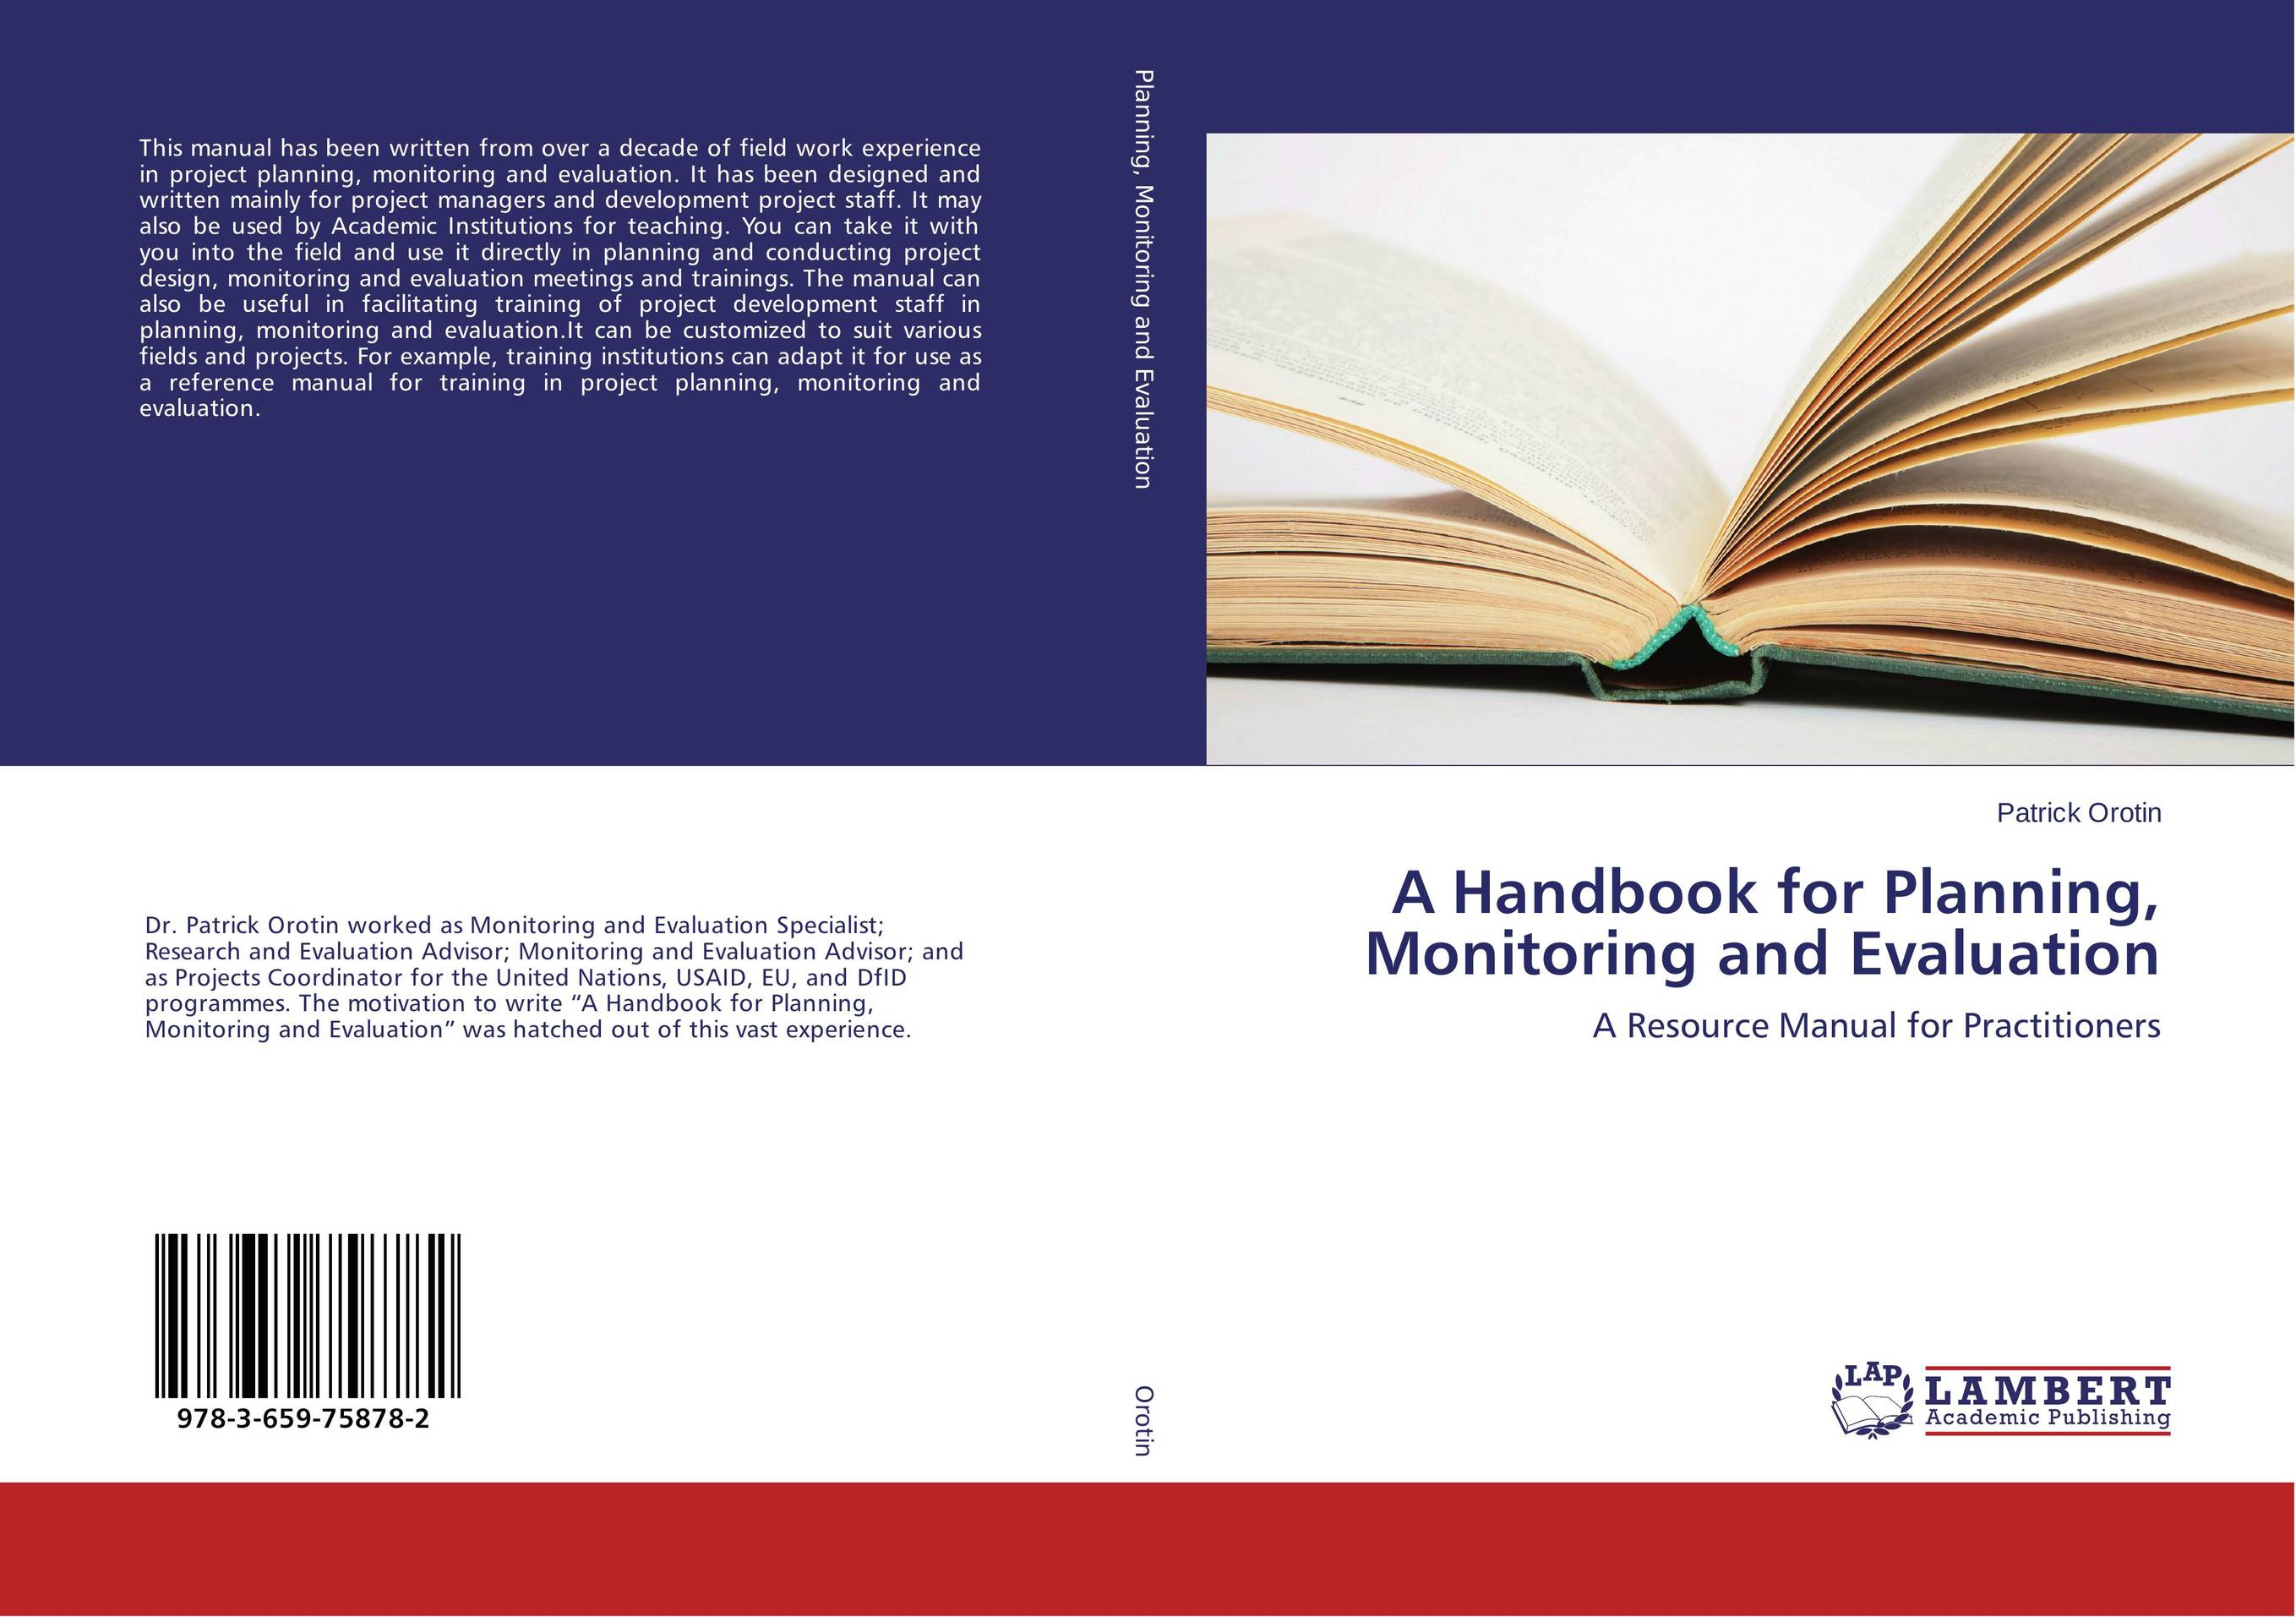 A Handbook for Planning, Monitoring and Evaluation elaine biech training and development for dummies